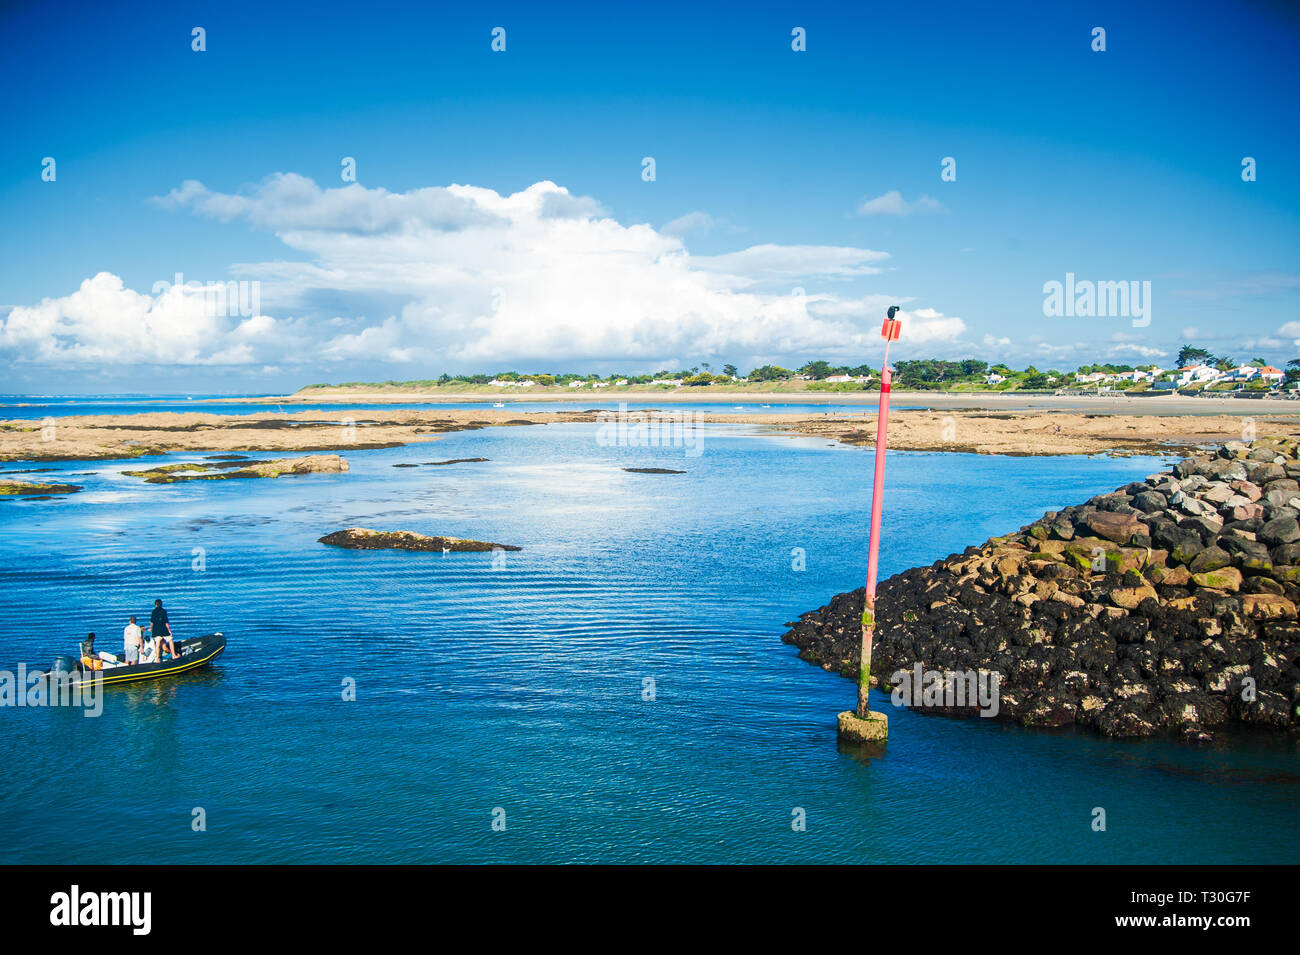 Cormoran on a pole at sea drying in the sun in Summertime on the isle of Noirmouiter with some people on a little boat - Stock Image